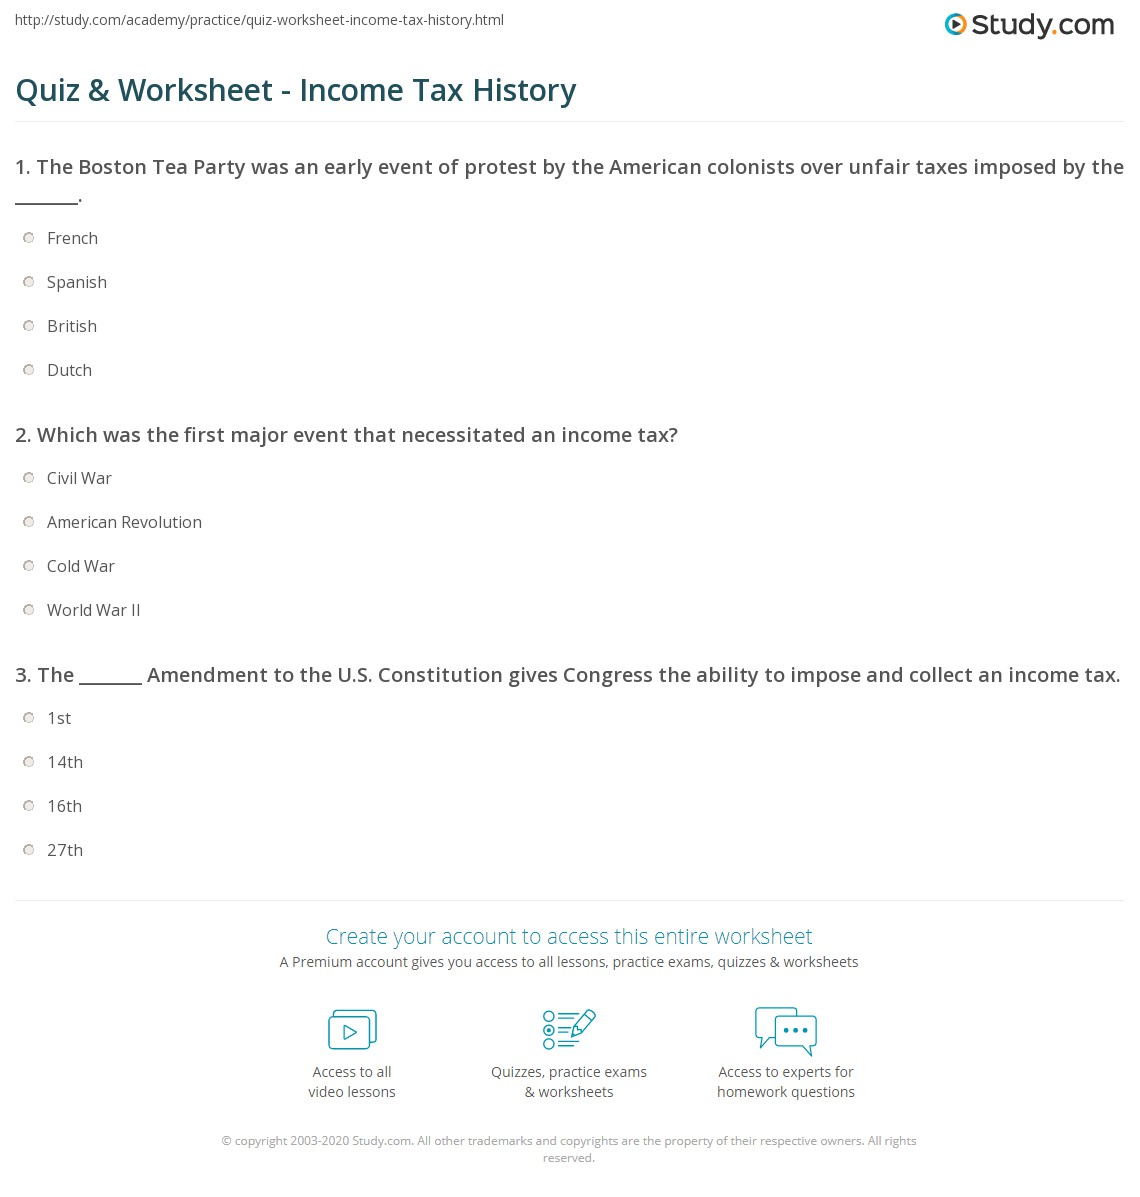 world history of tax A world history of tax rebellions has 1 rating and 0 reviews a world history of tax rebellions is an exhaustive reference source for over 4,300 years of.